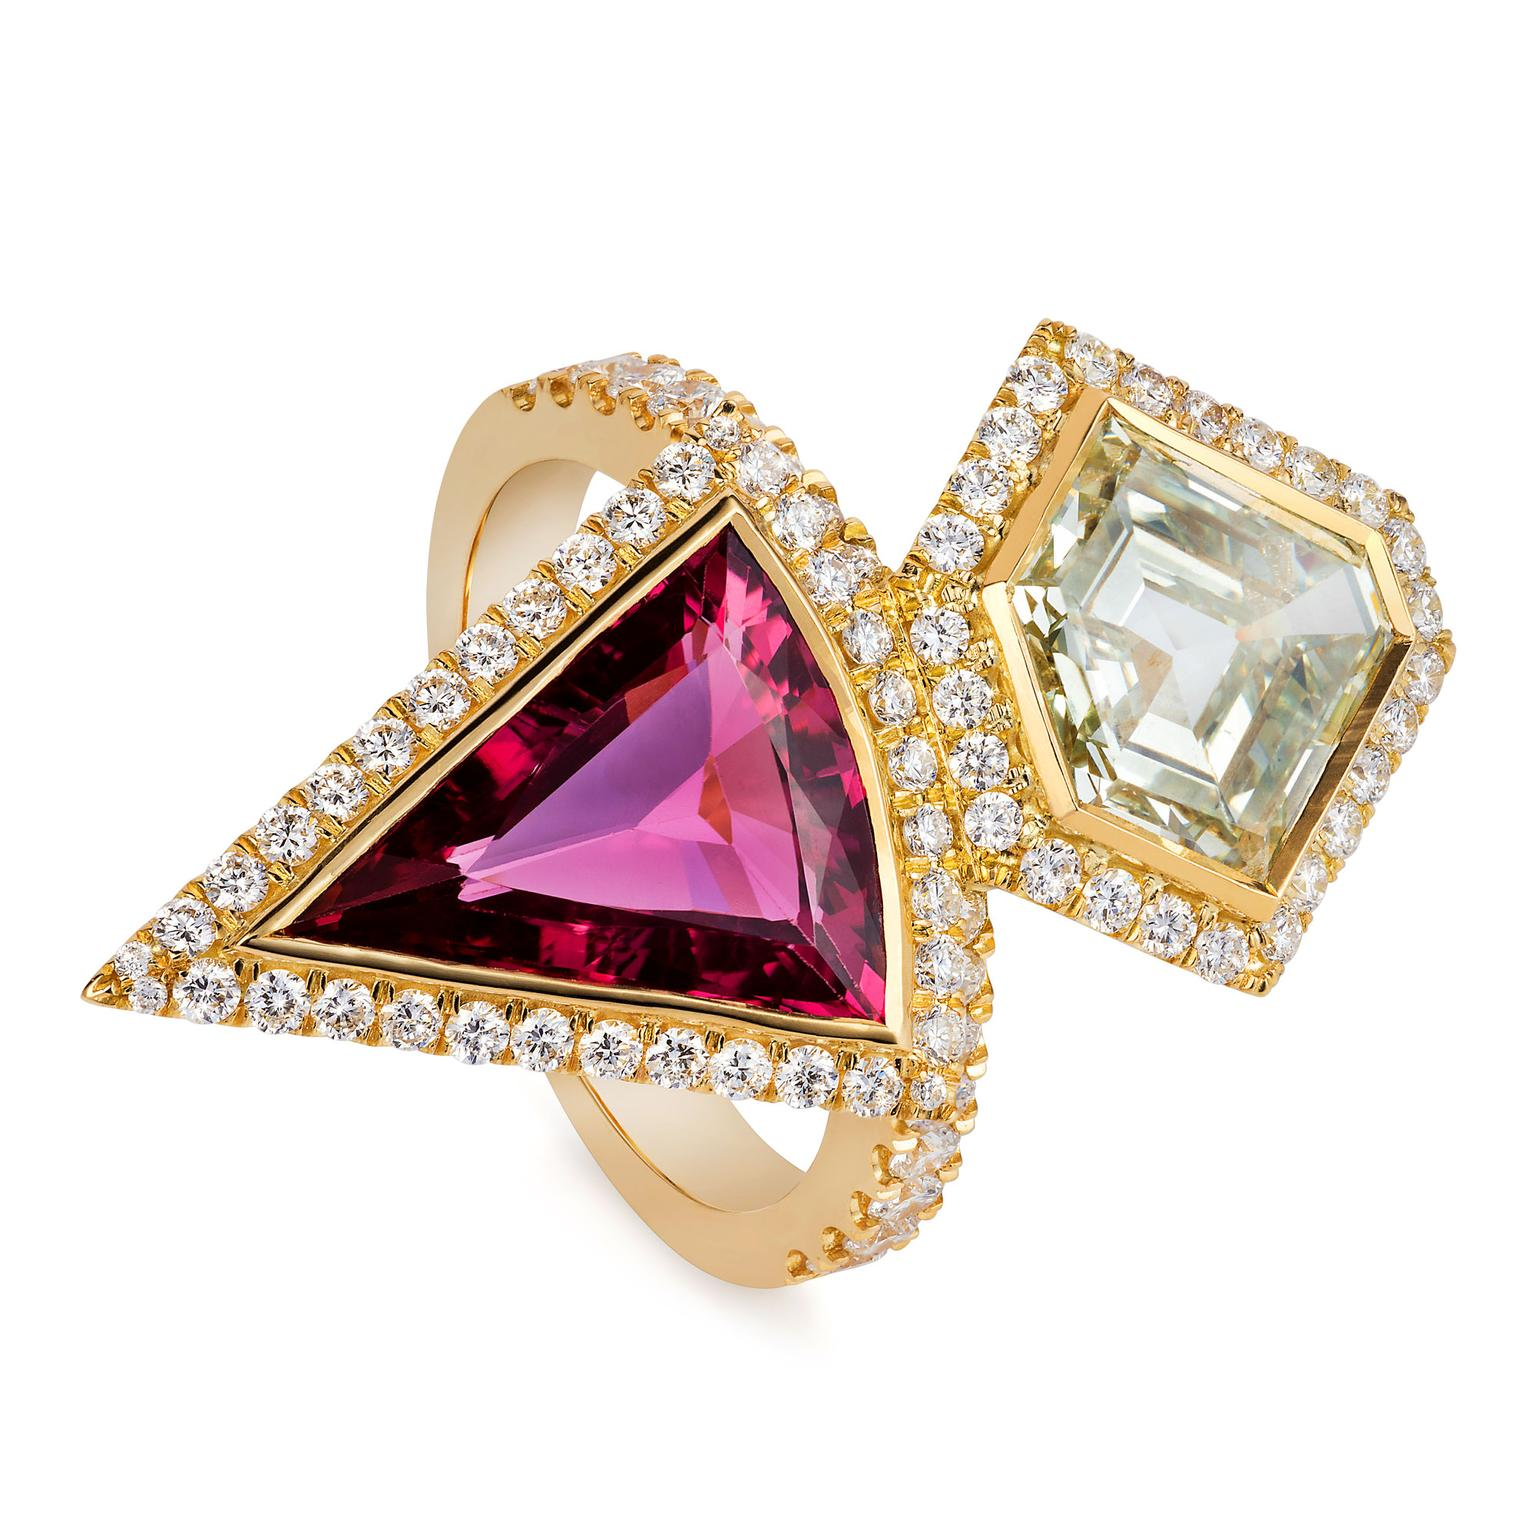 Sabine Roemer Superwoman diamond and pink tourmaline ring